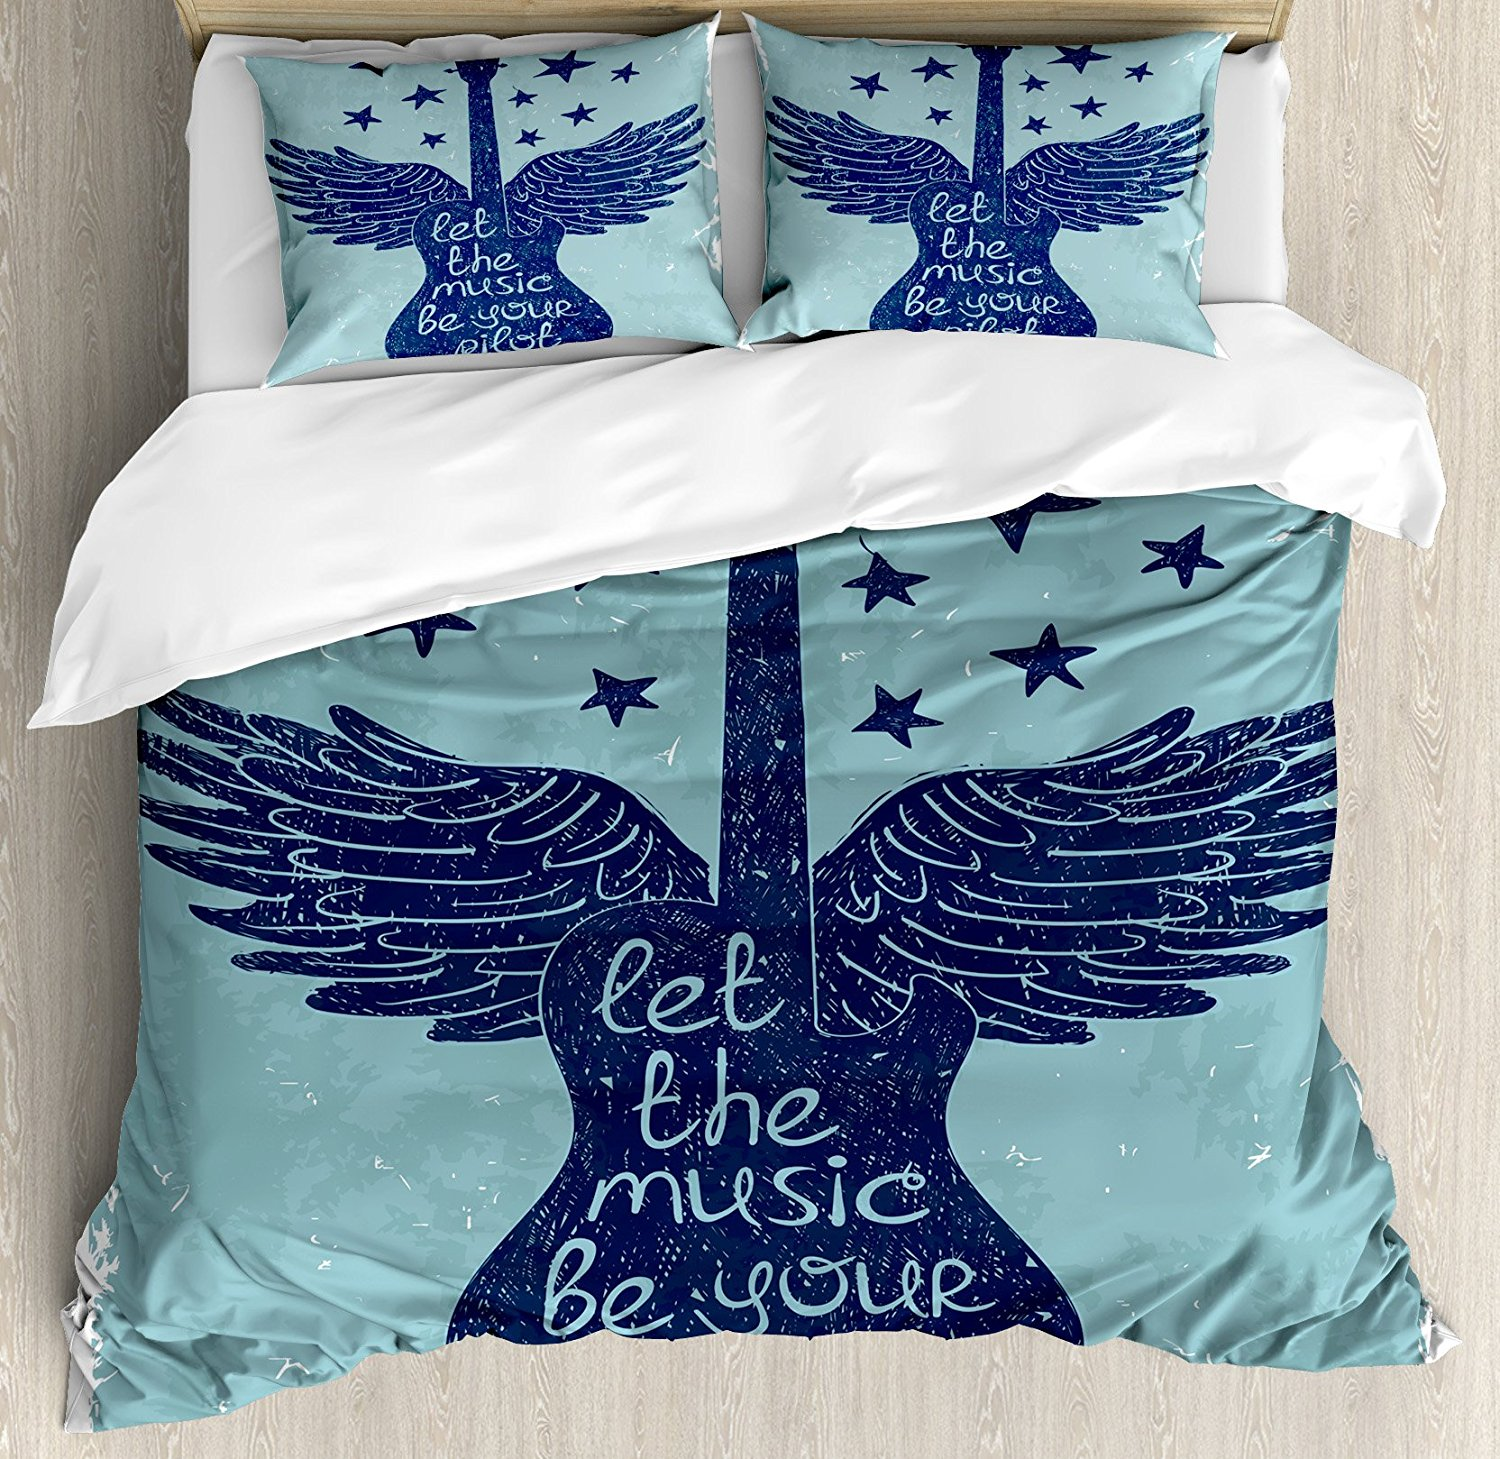 Music Duvet Cover Set Let the Music Be Your Pilot Quote Winged Electronic Guitar and Stars Retro Print Decor 4pcs Bedding Set